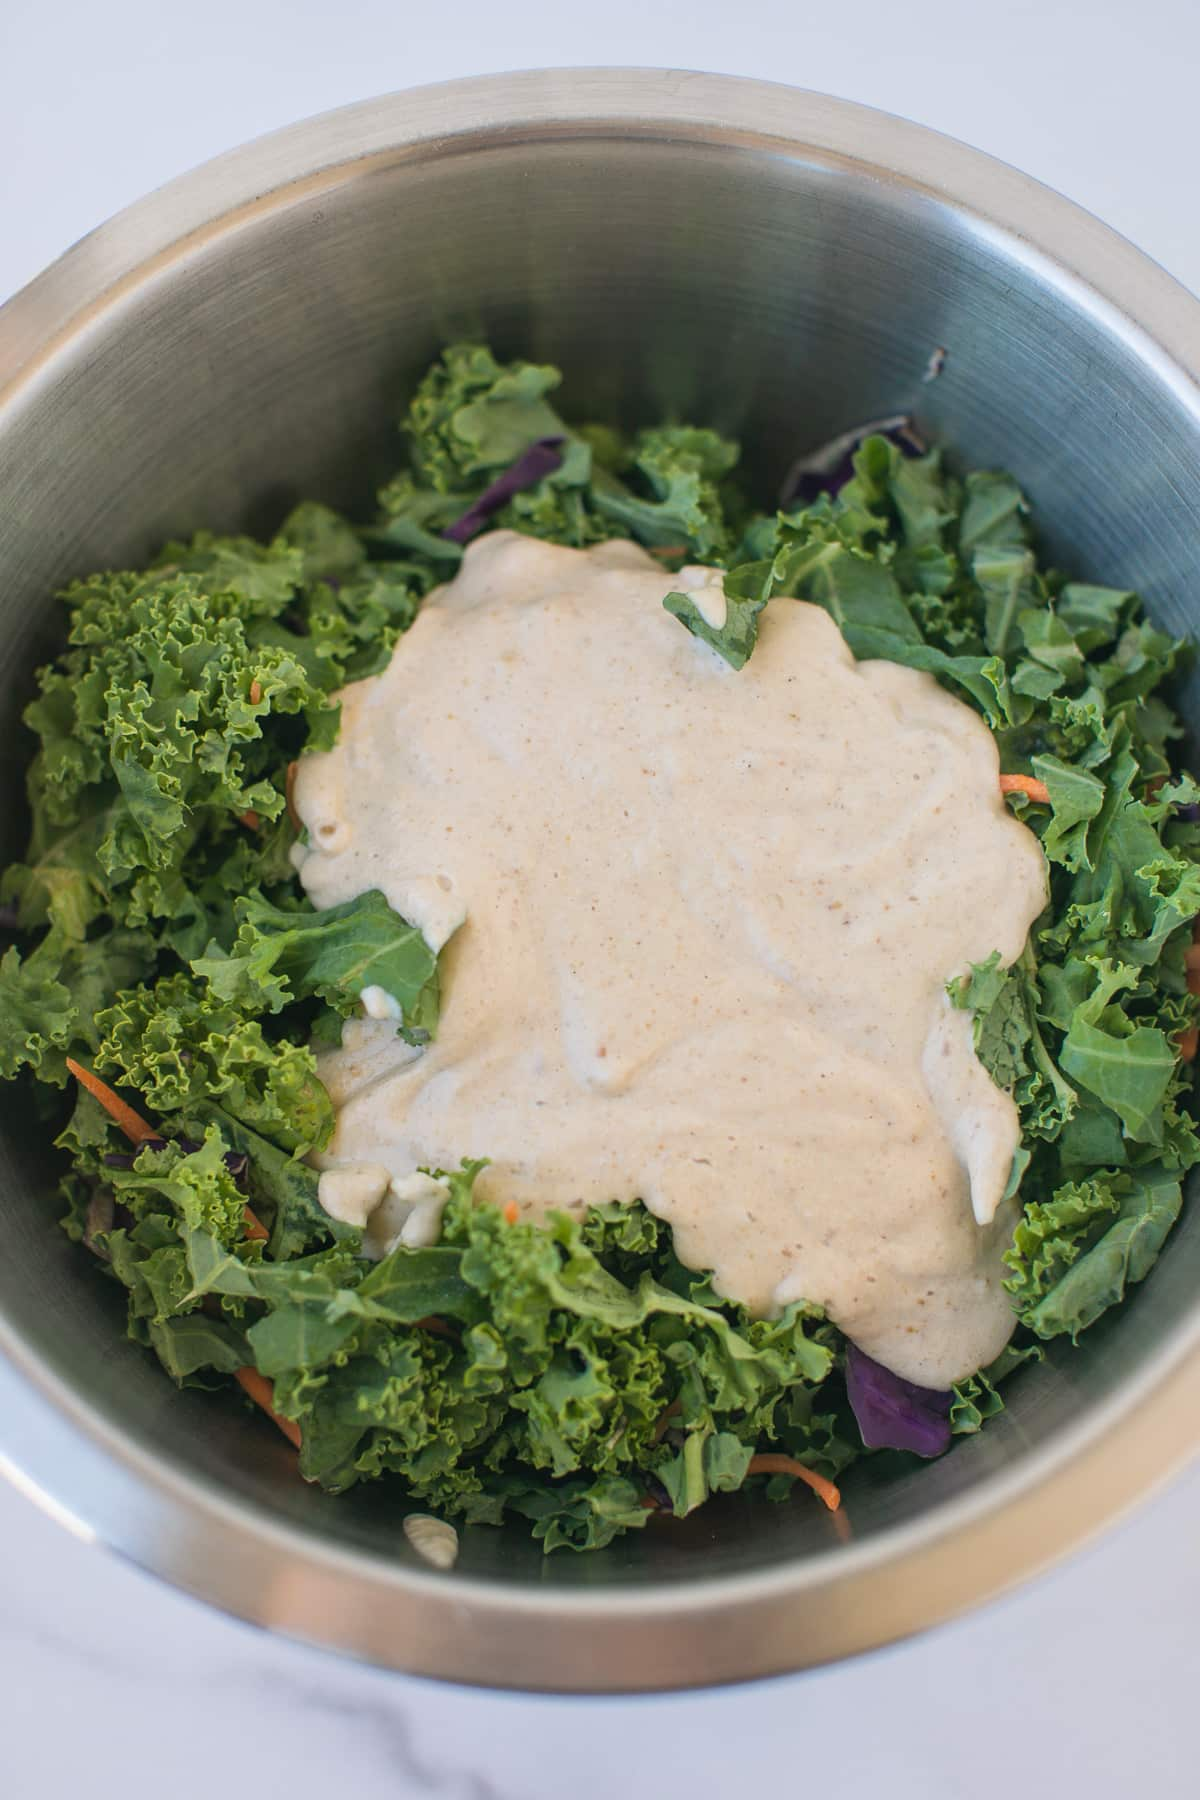 kale salad with dressing on top